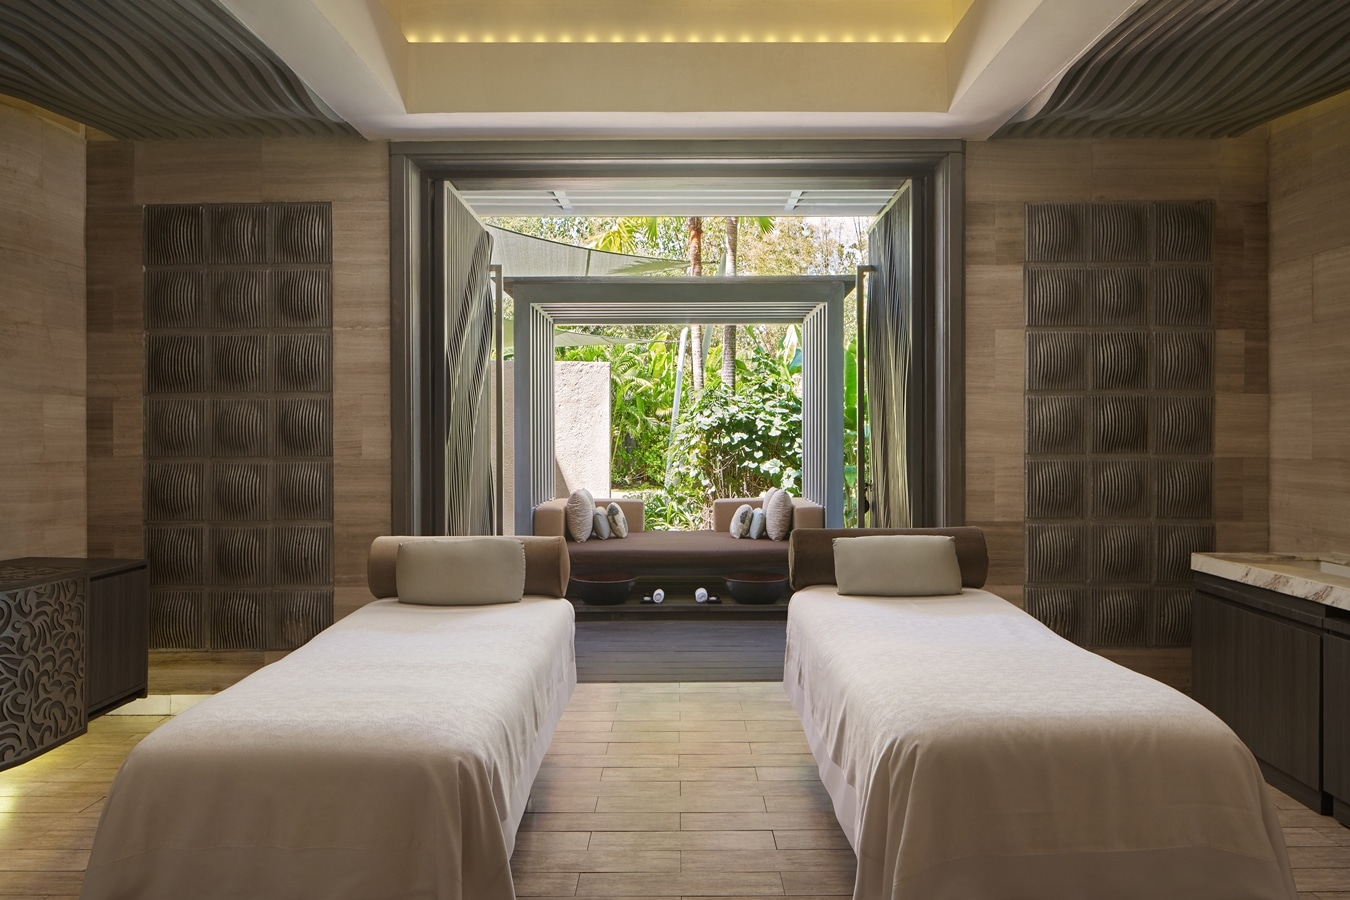 Heavenly spa by westin - insight bali